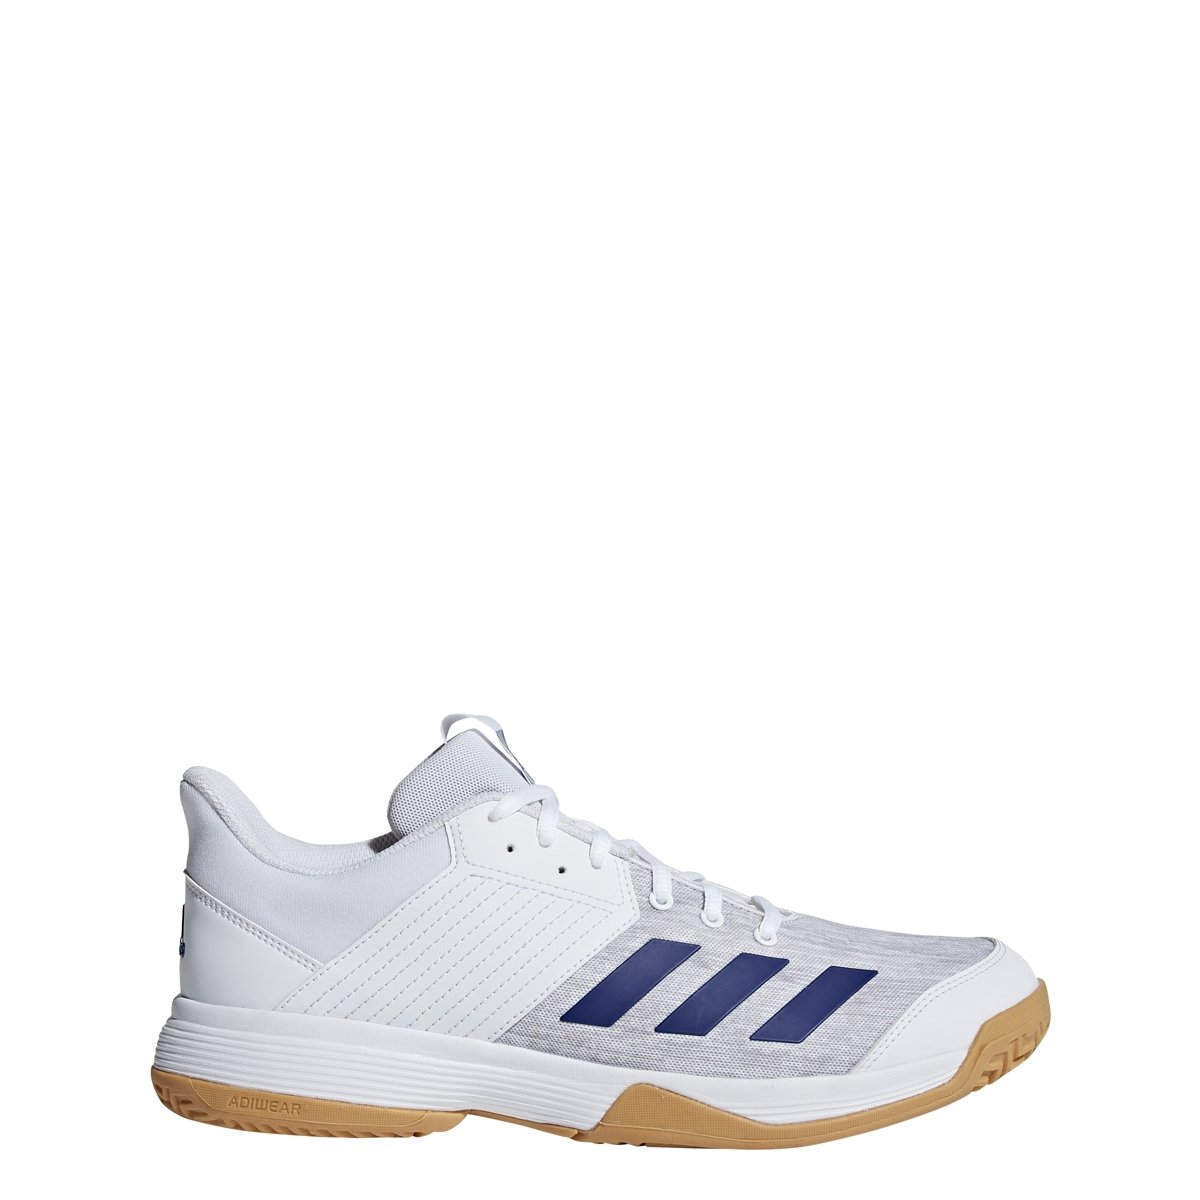 adidas Men's Ligra 6 Volleyball Shoe, White/Mystery Ink/Grey, 4.5 M US by adidas